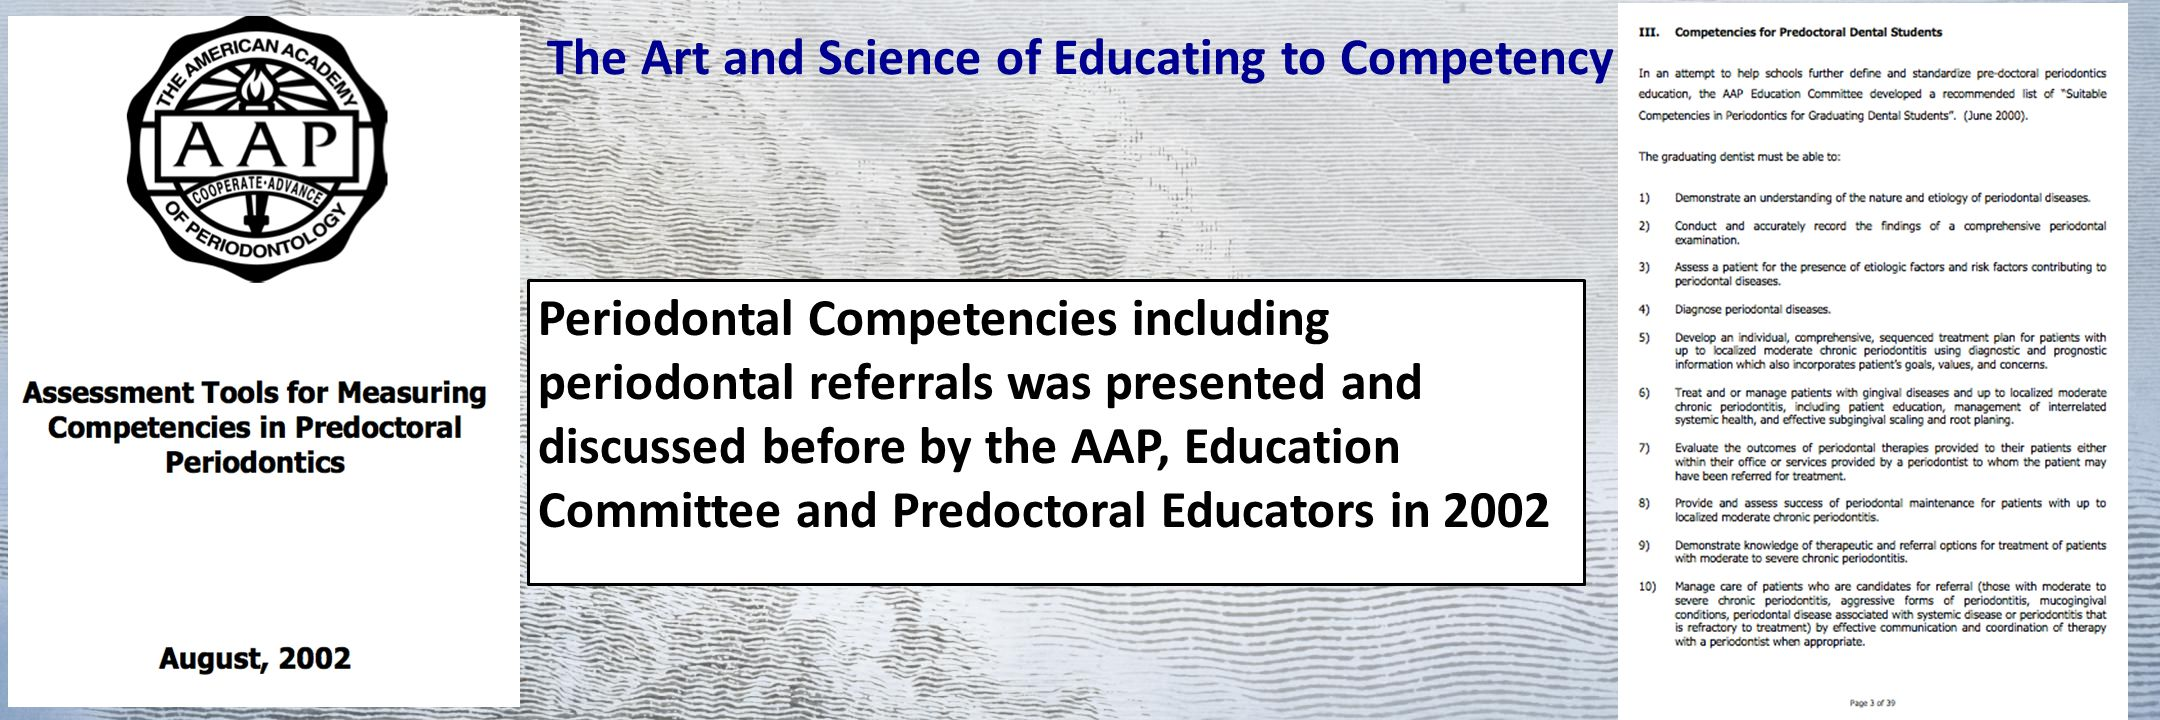 The Art and Science of Educating to Competency Periodontal Competencies including periodontal referrals was presented and discussed before by the AAP,